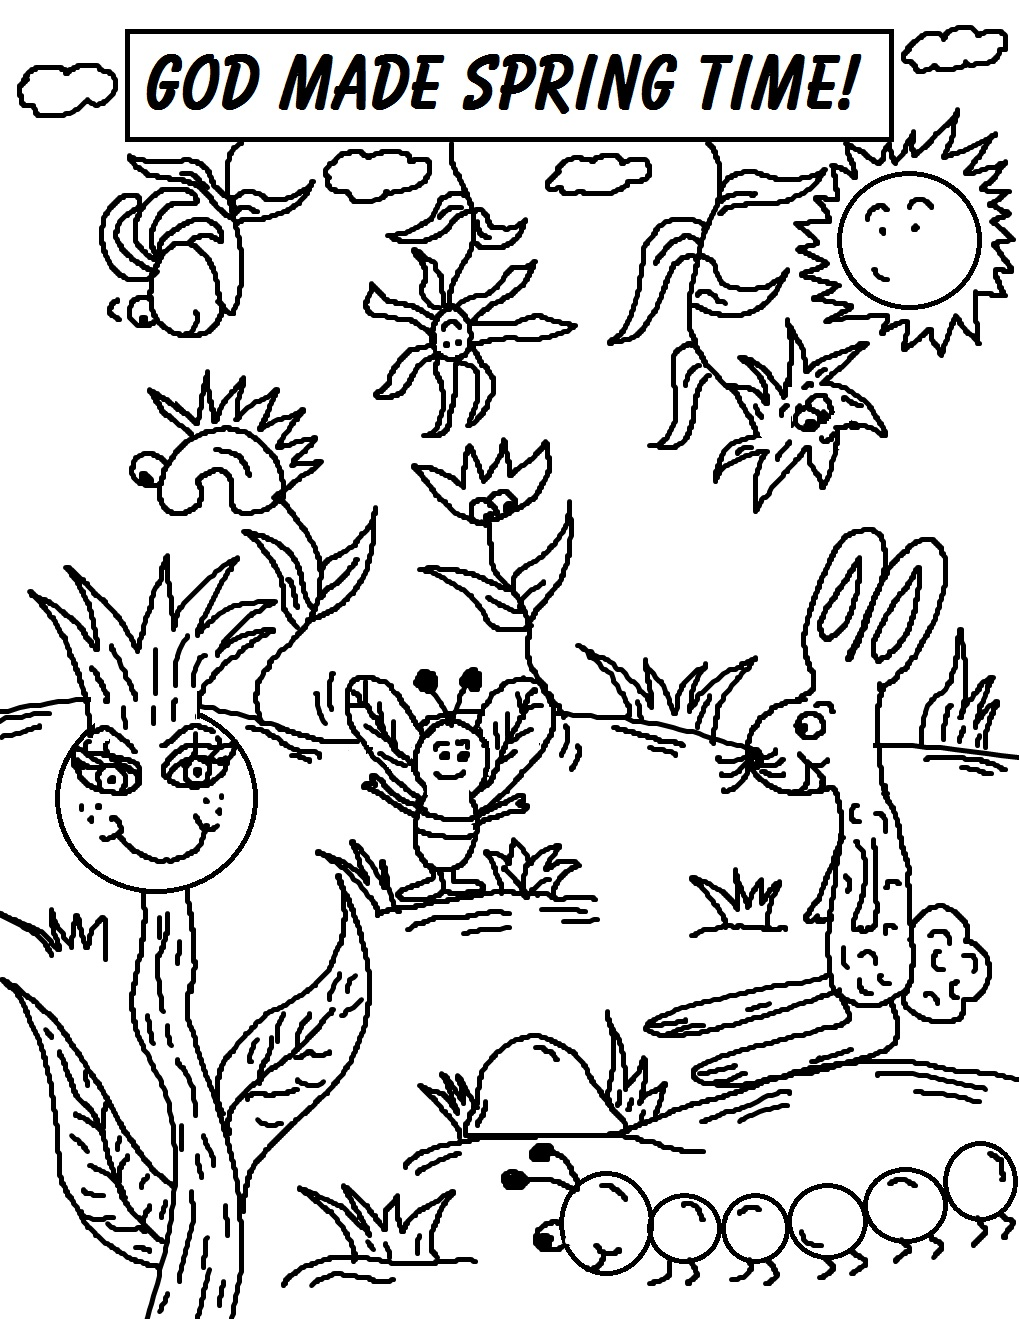 Spring coloring sheets for preschool - Spring Coloring Pages Toddlers Spring Coloring Pages For Toddlers Preschool And Springtime Coloring Pages